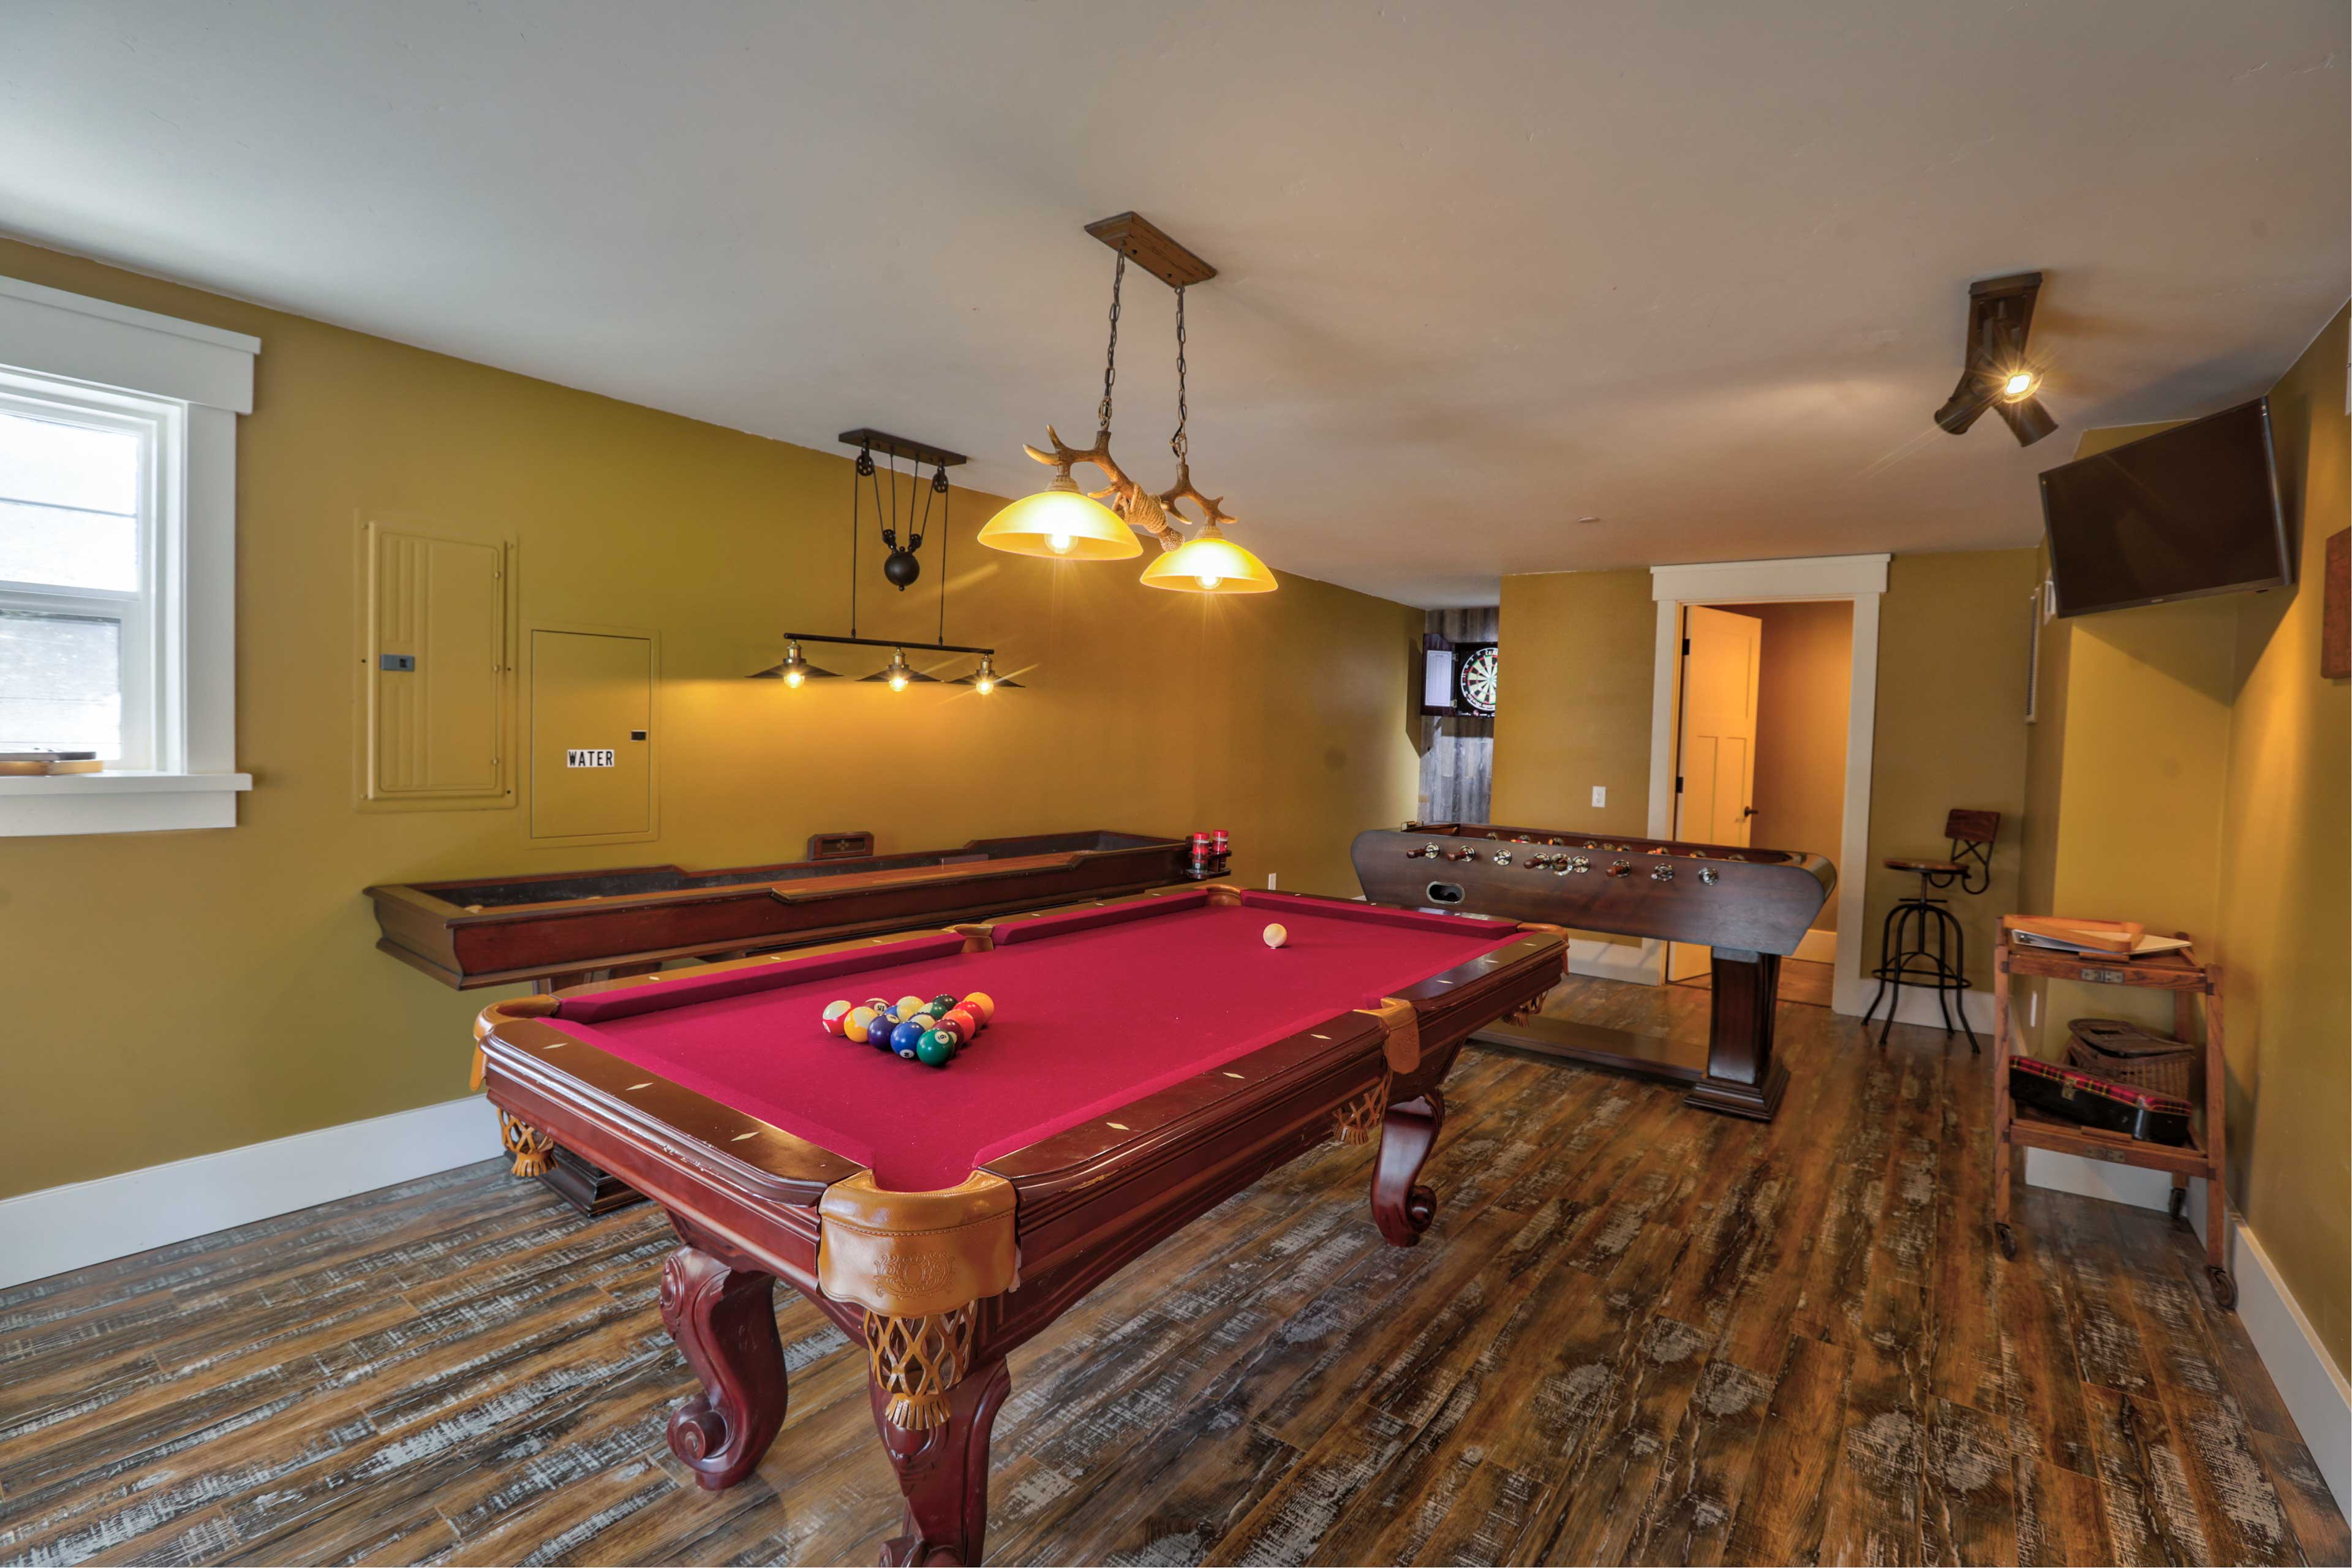 Shoot some pool or pick sides for a foosball tournament.